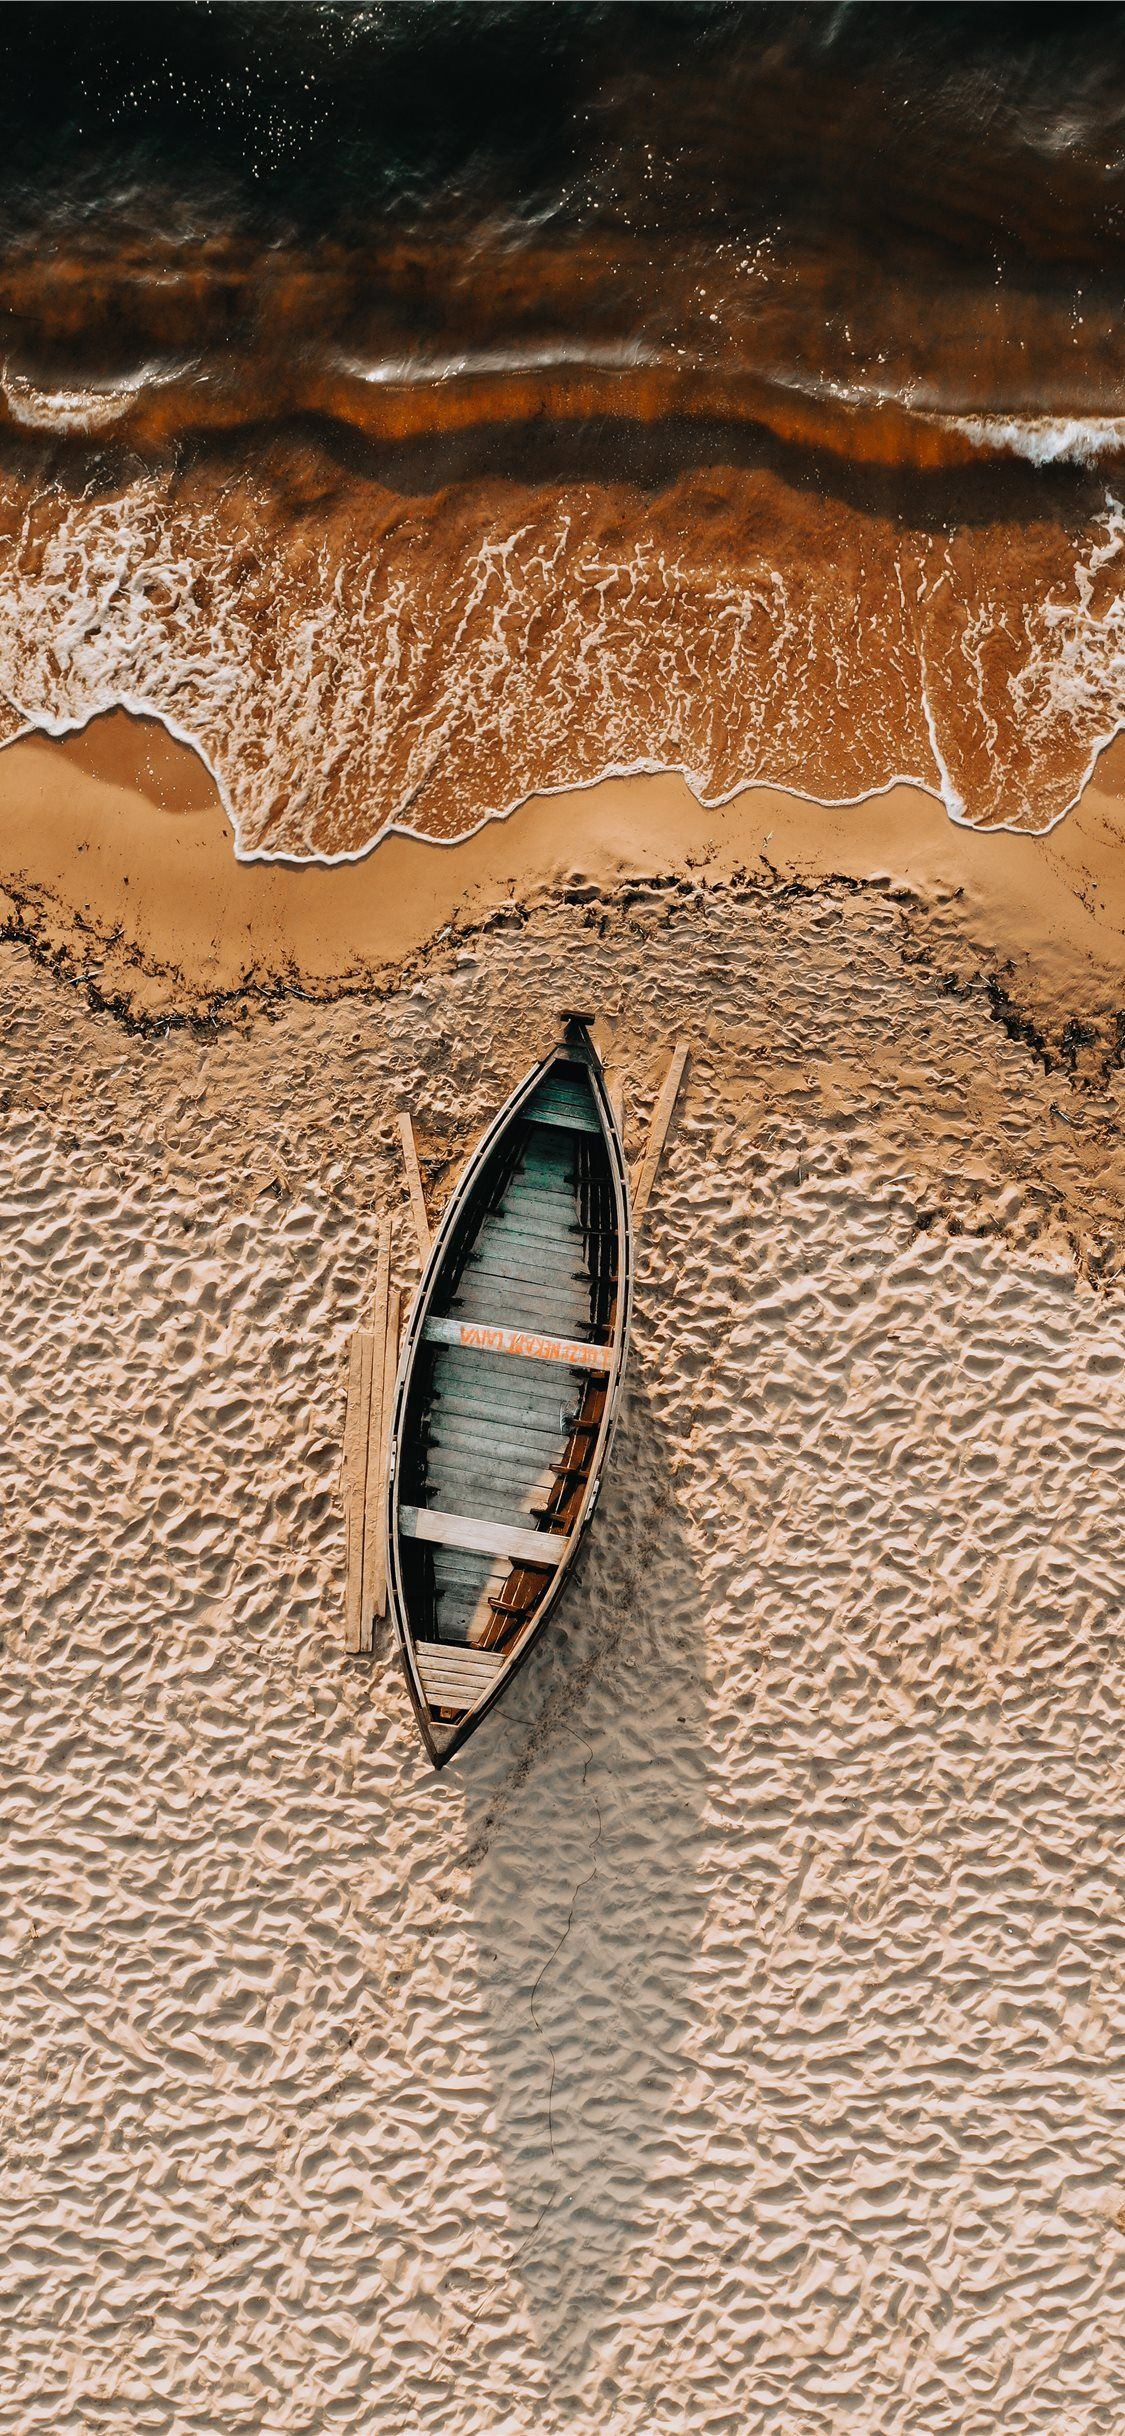 brown and white boat on brown sand iPhone 11 Wallpapers